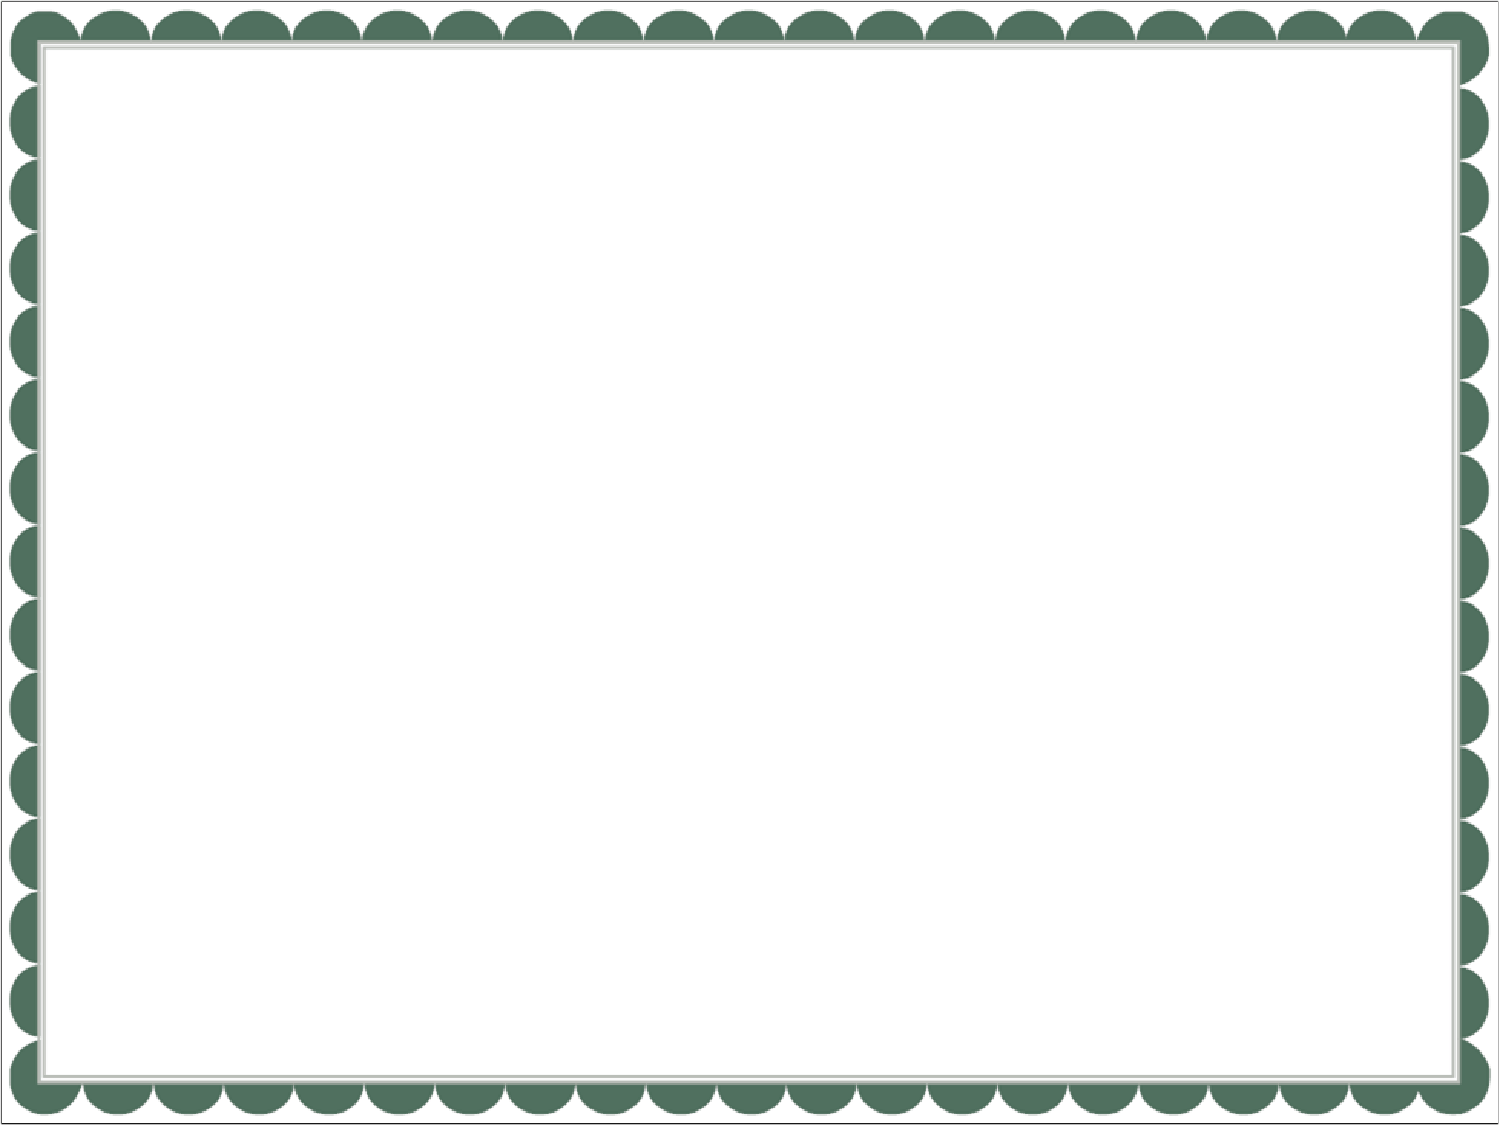 free certificate border templates gallery - templates example free, Modern powerpoint